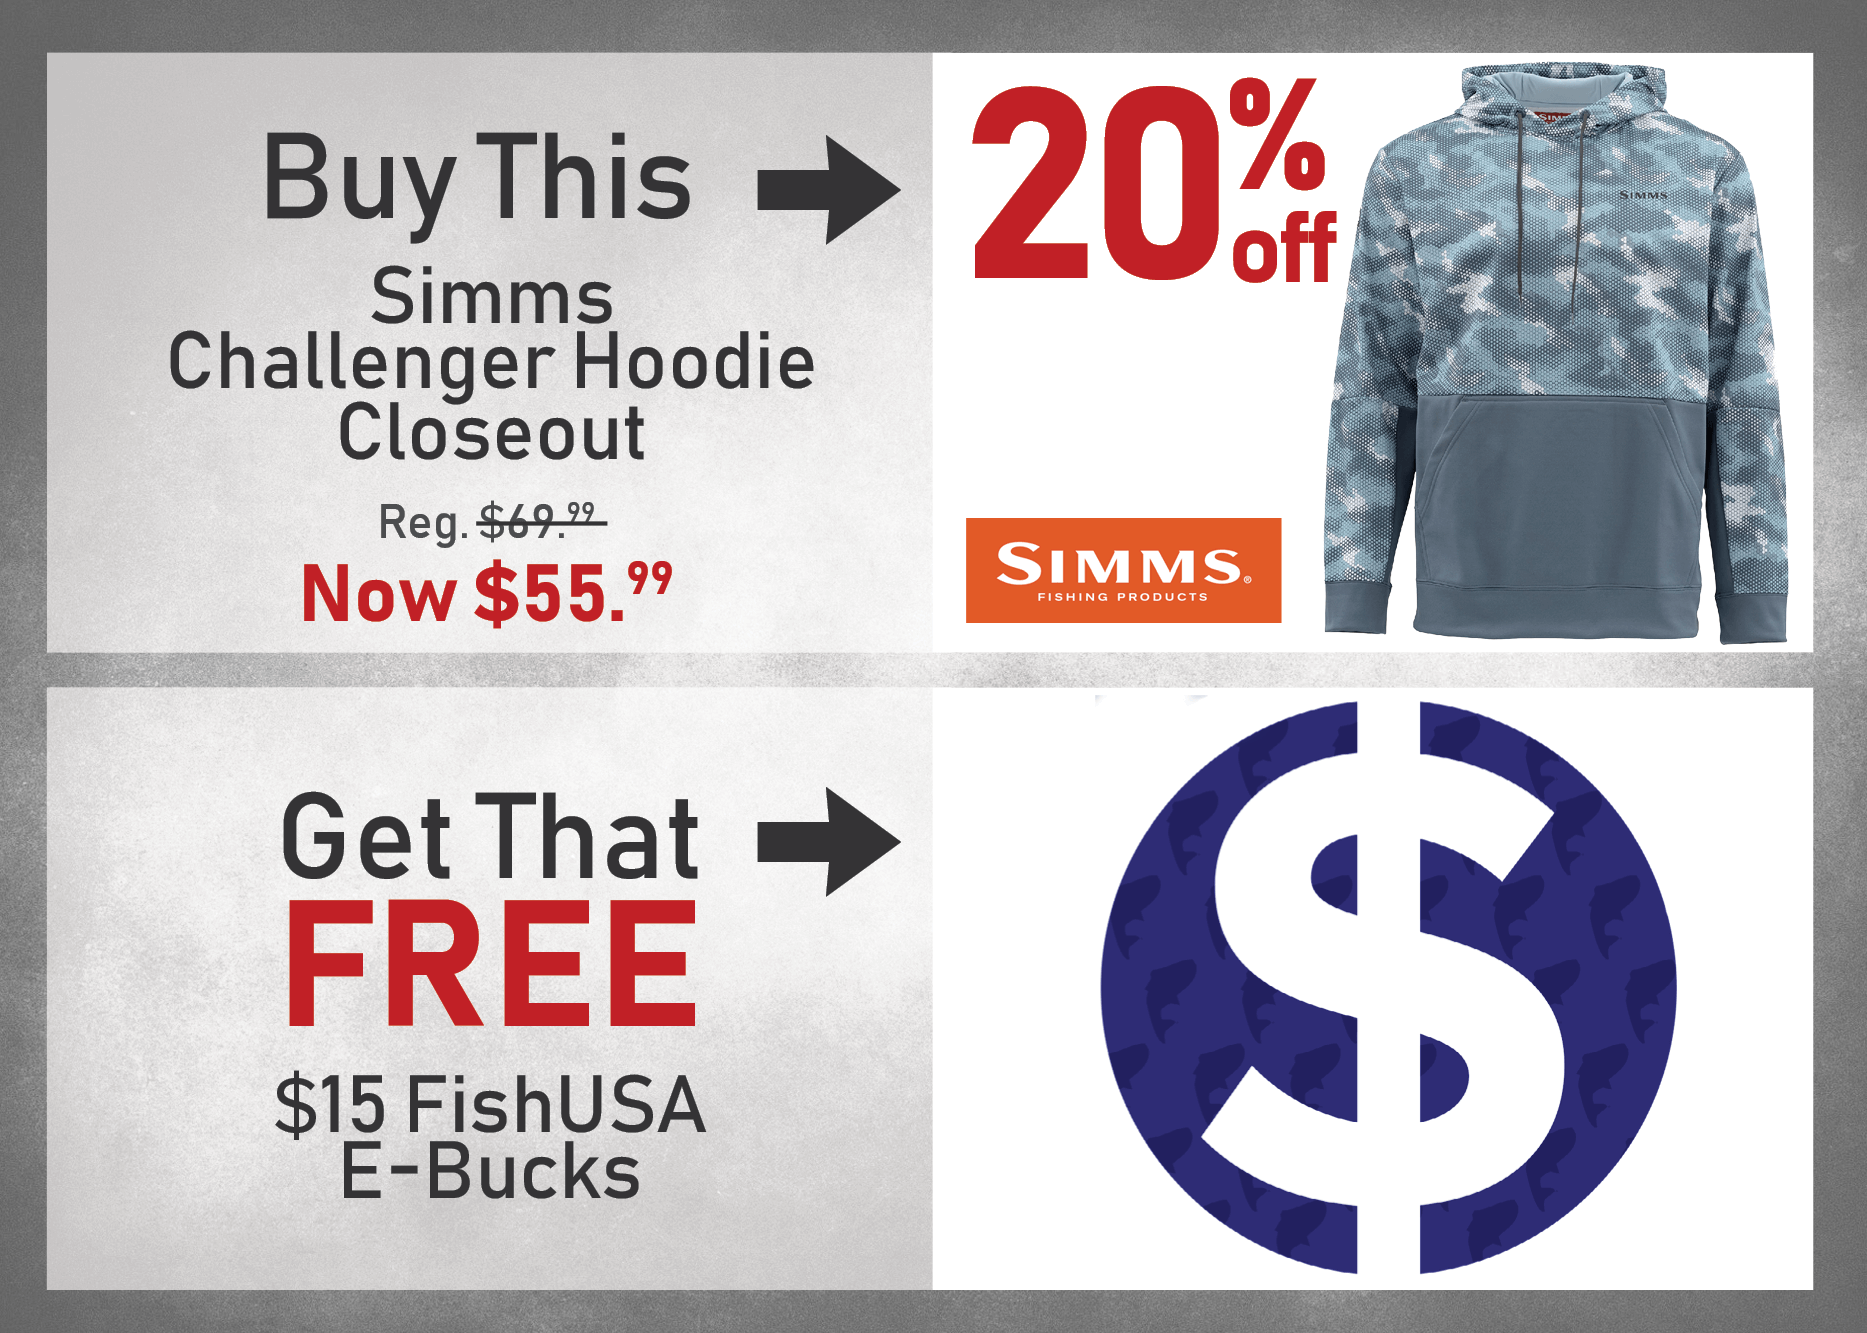 Buy a Simms Challenger Hoodie - Closeout at 20% off and get $15 FishUSA E-Bucks!